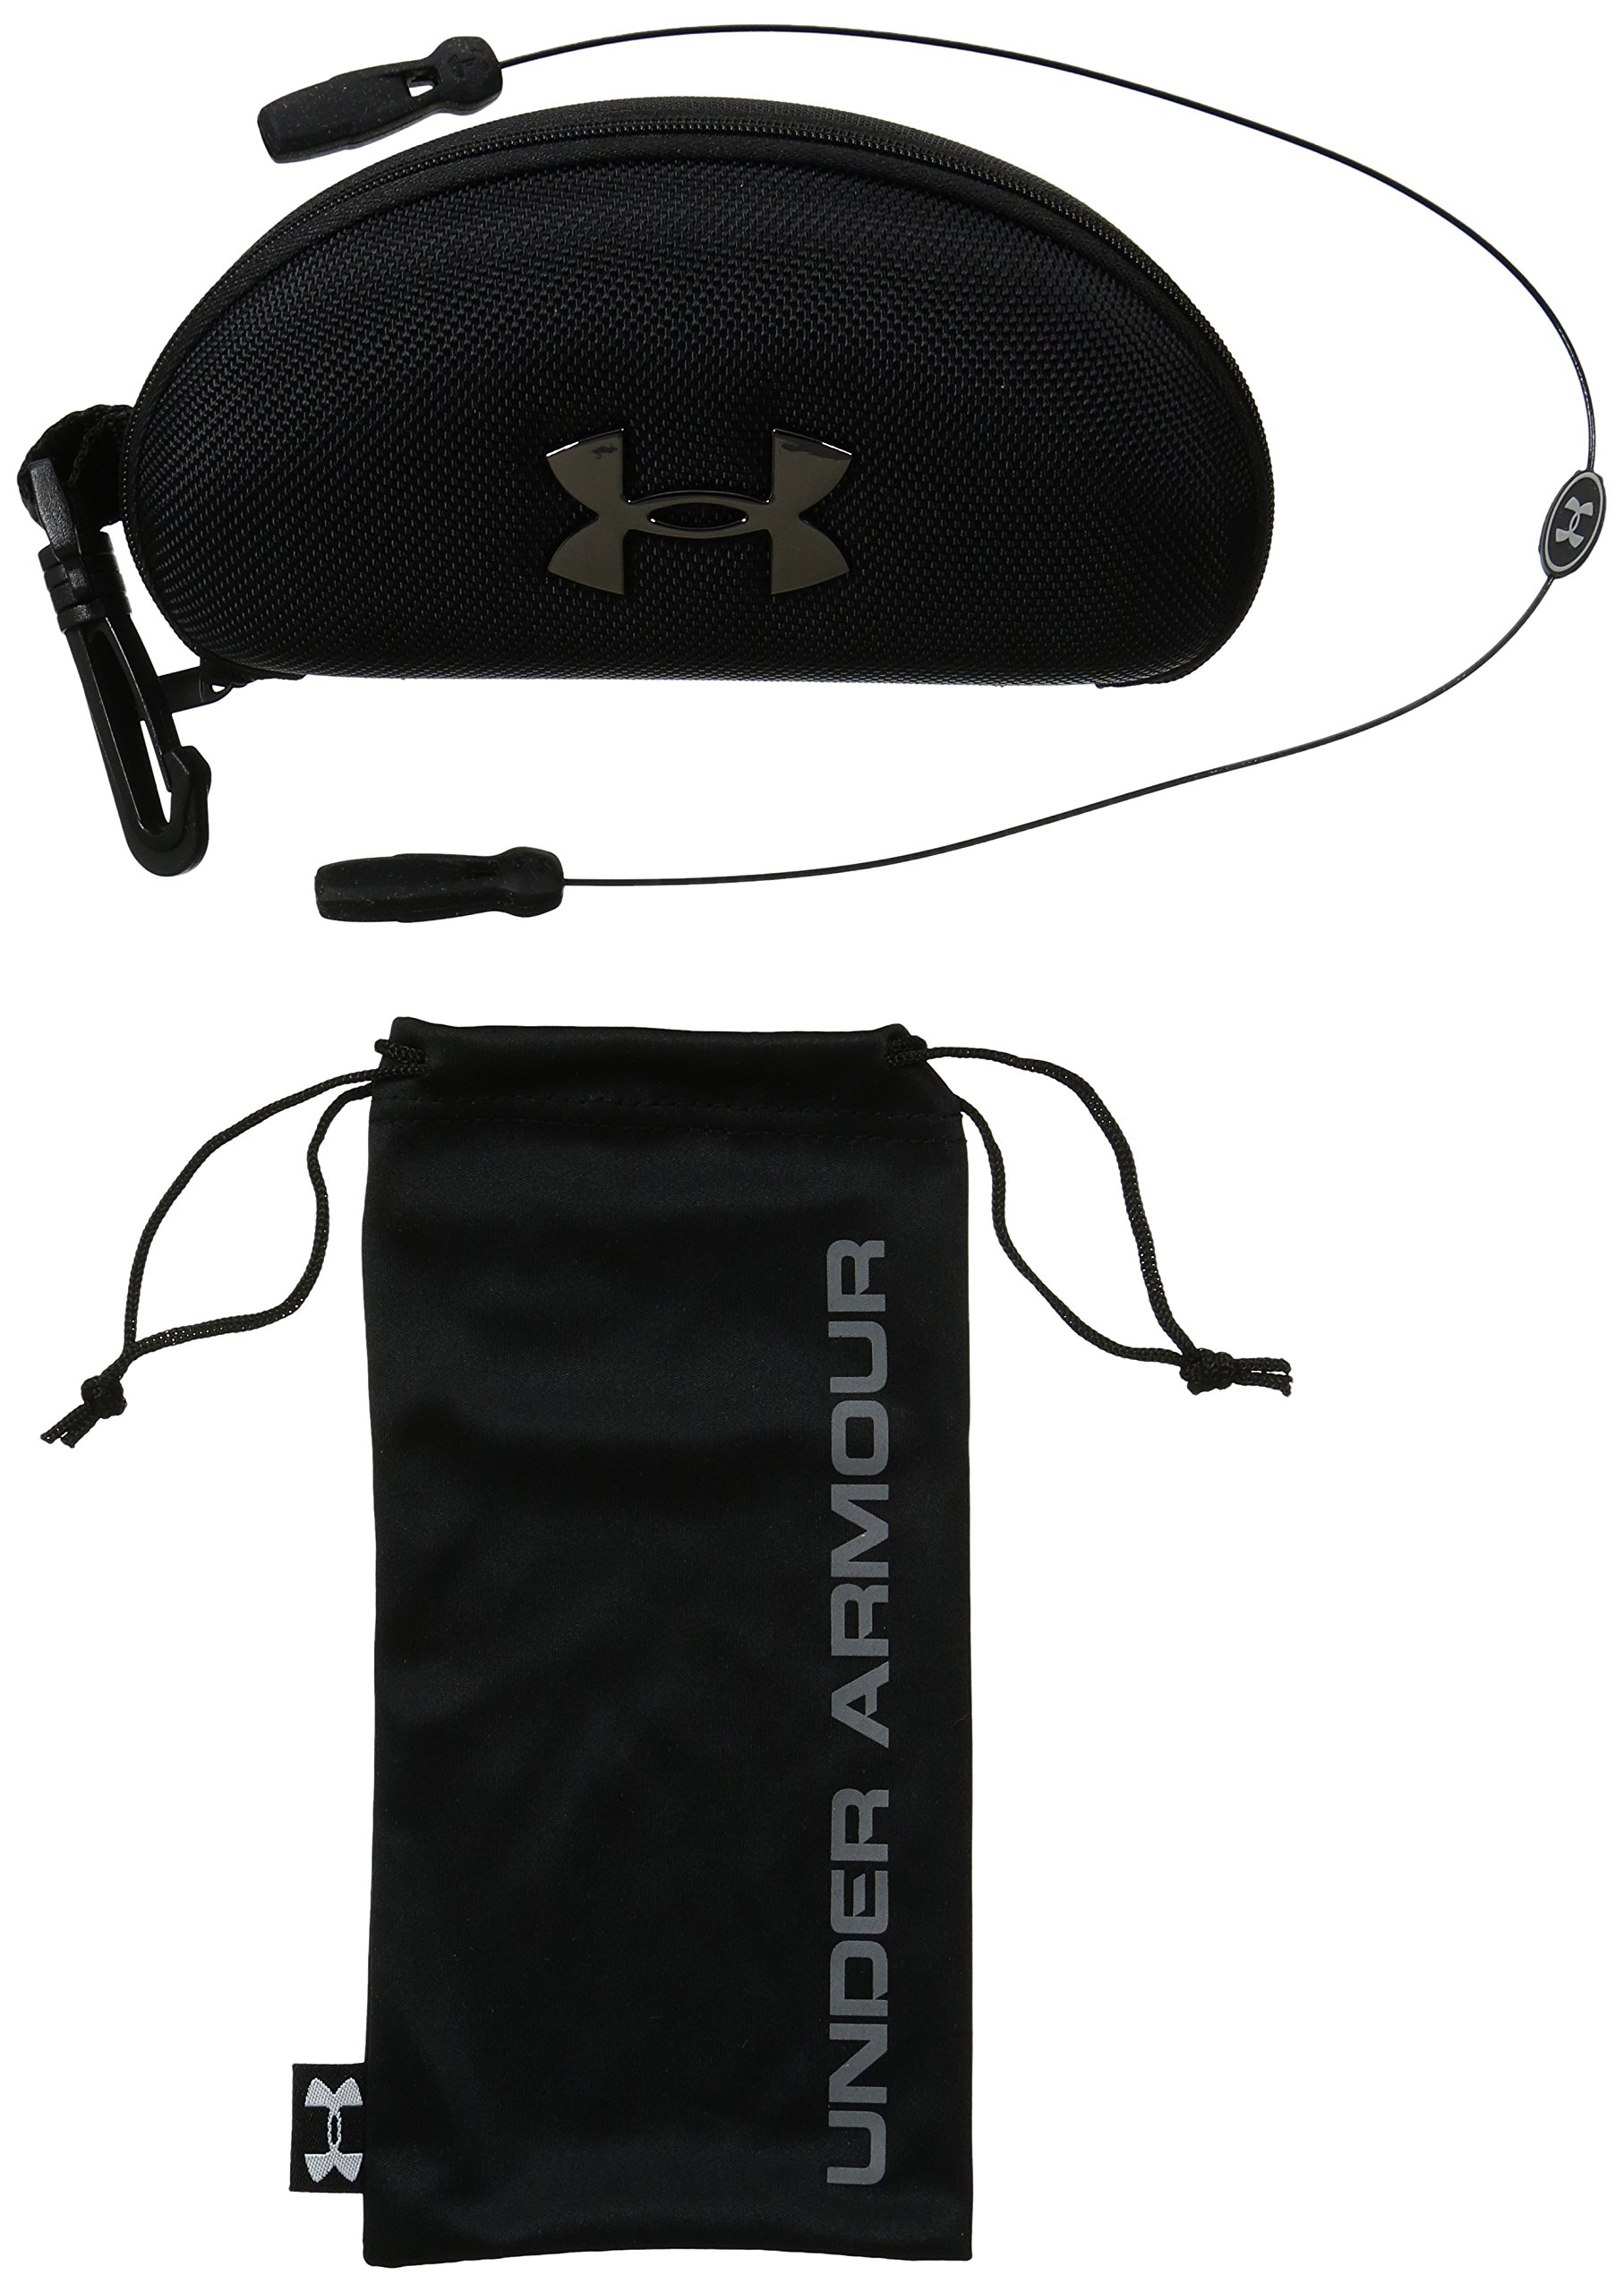 Under Armour Sunglass Accessory Pack by Under Armour